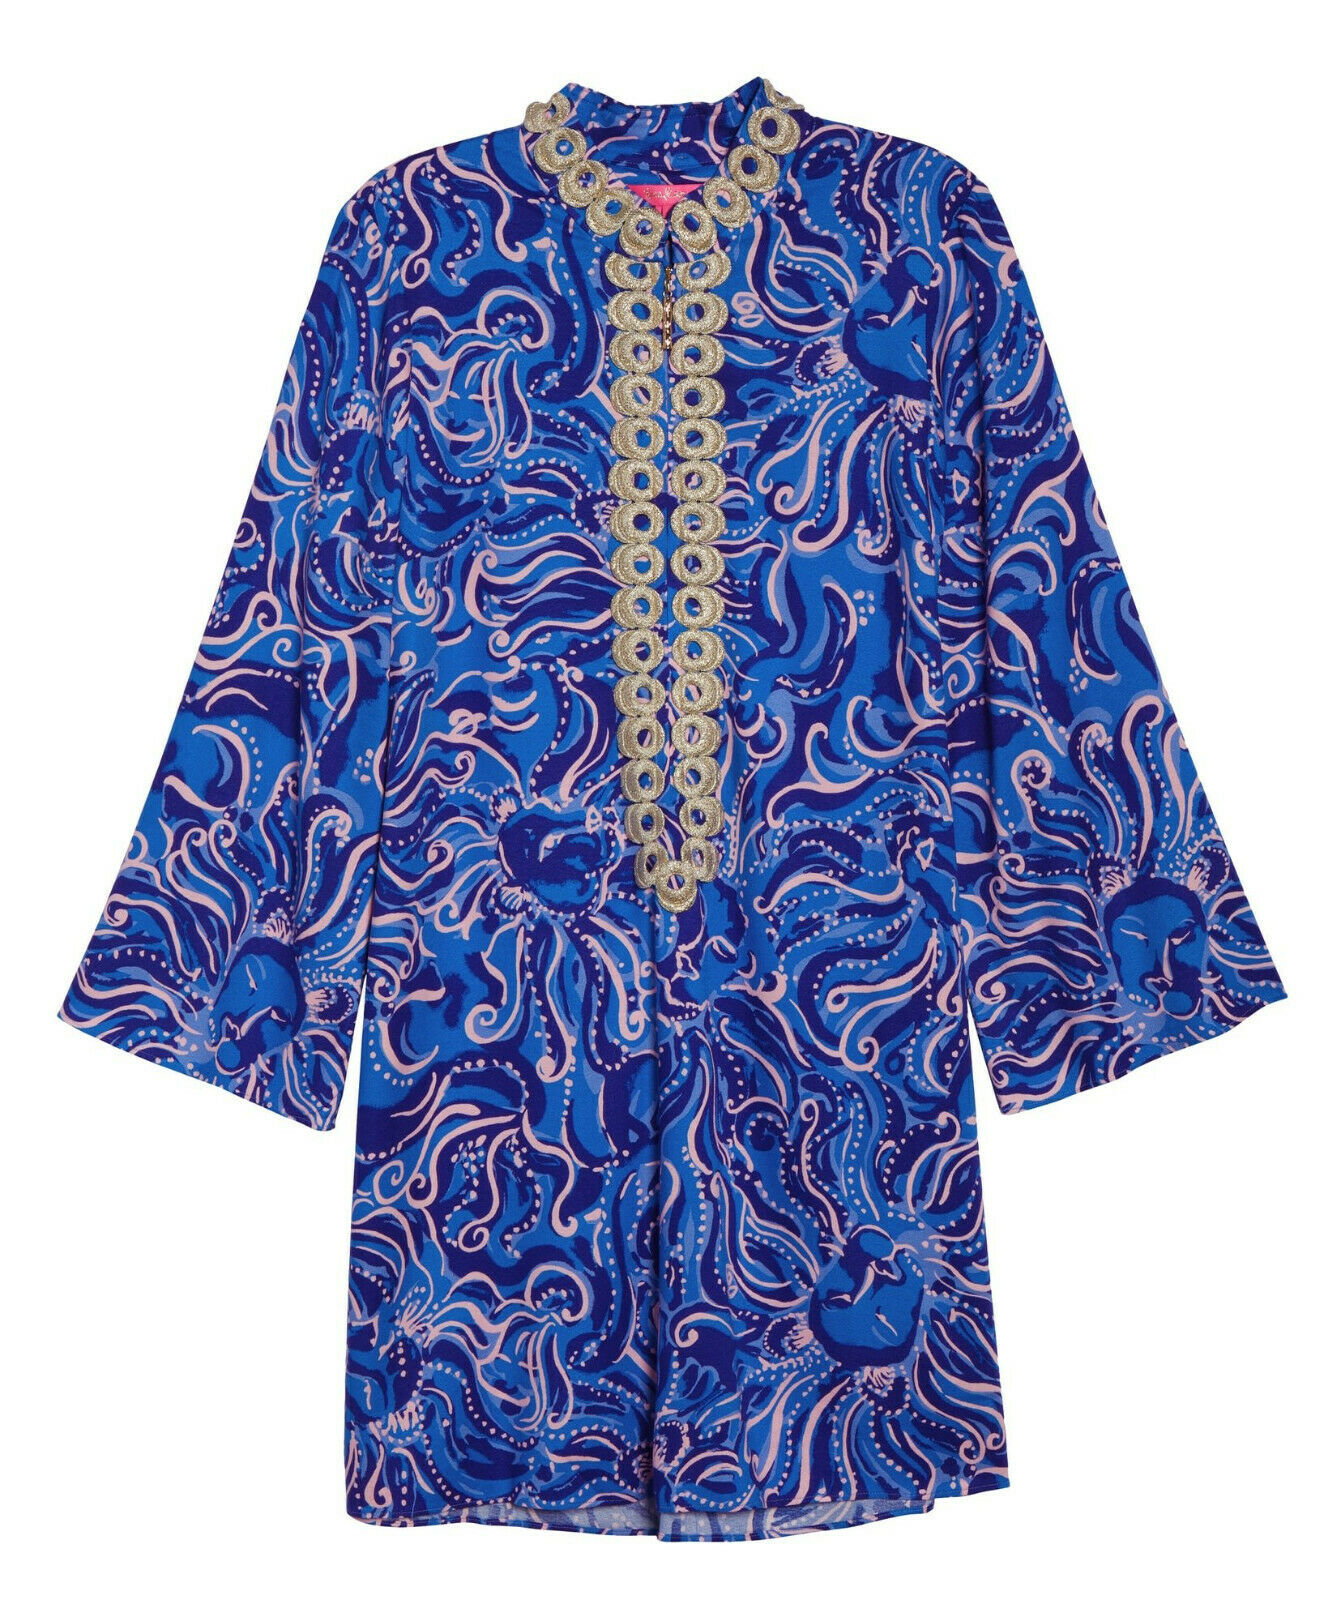 c3e59dca12980f Lilly Pulitzer NWT Gracelynn Stretch Stretch Stretch Tunic Dress Coastal  bluee Whispurr 5a0720